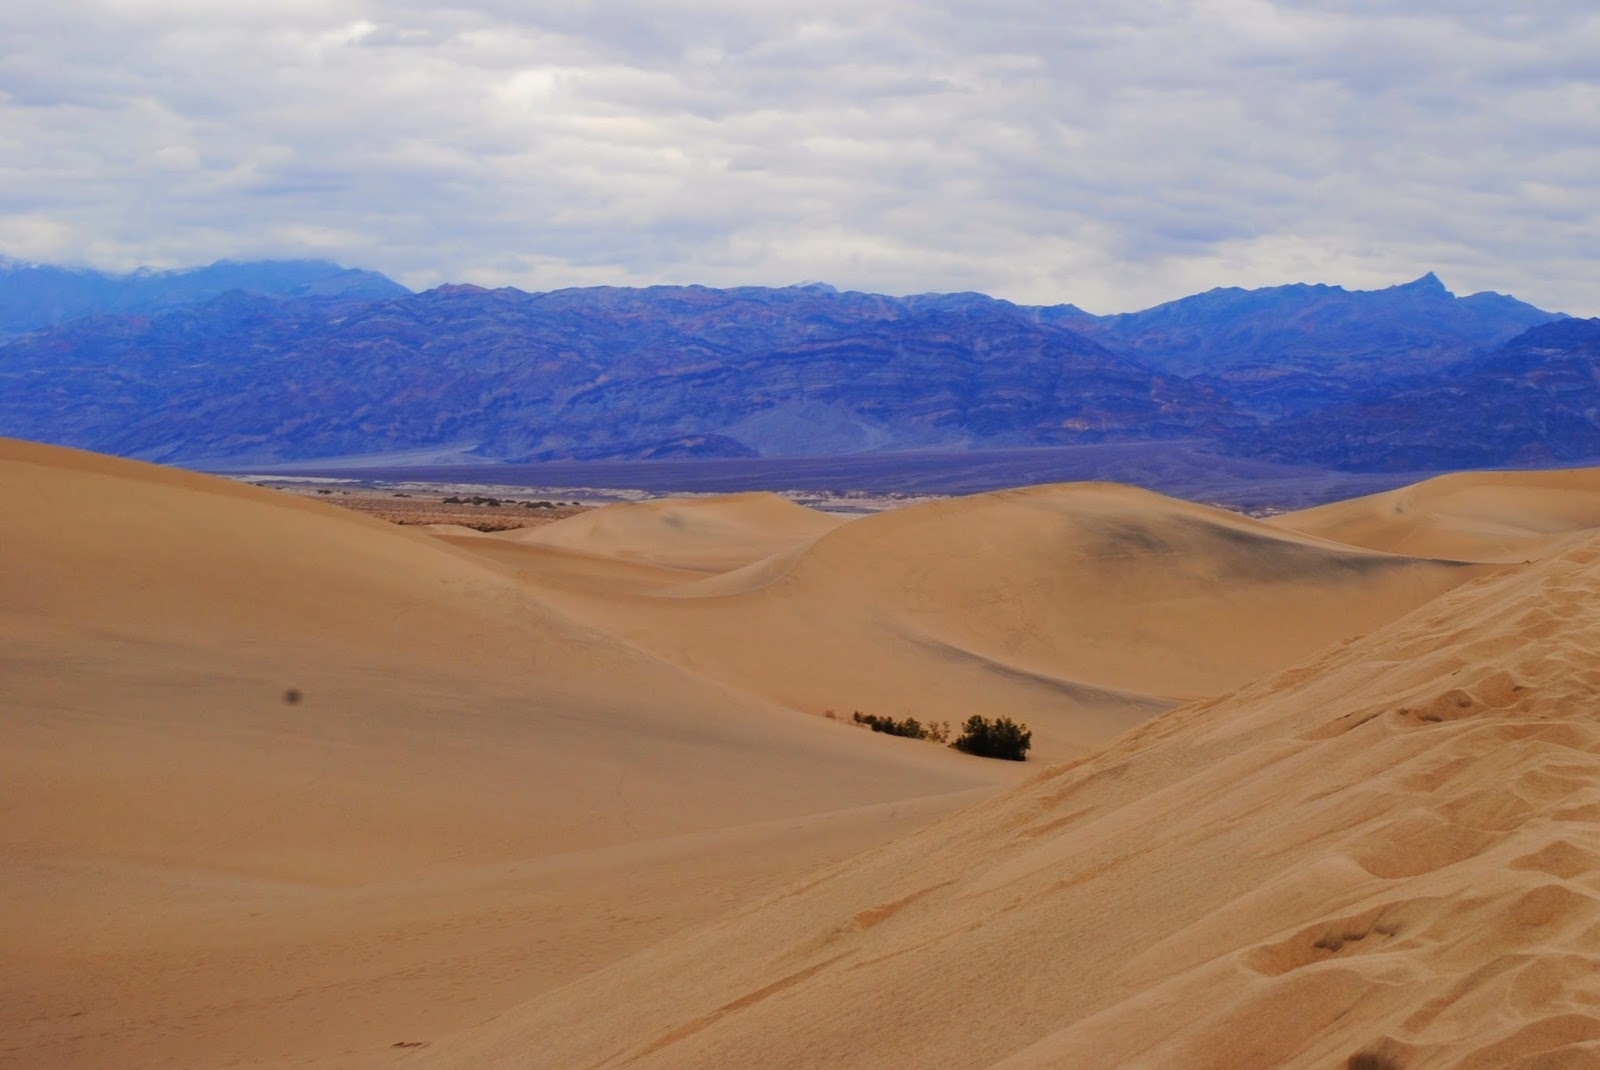 Visiting the Sand Dunes at Death Valley National Park on a day trip from Las Vegas